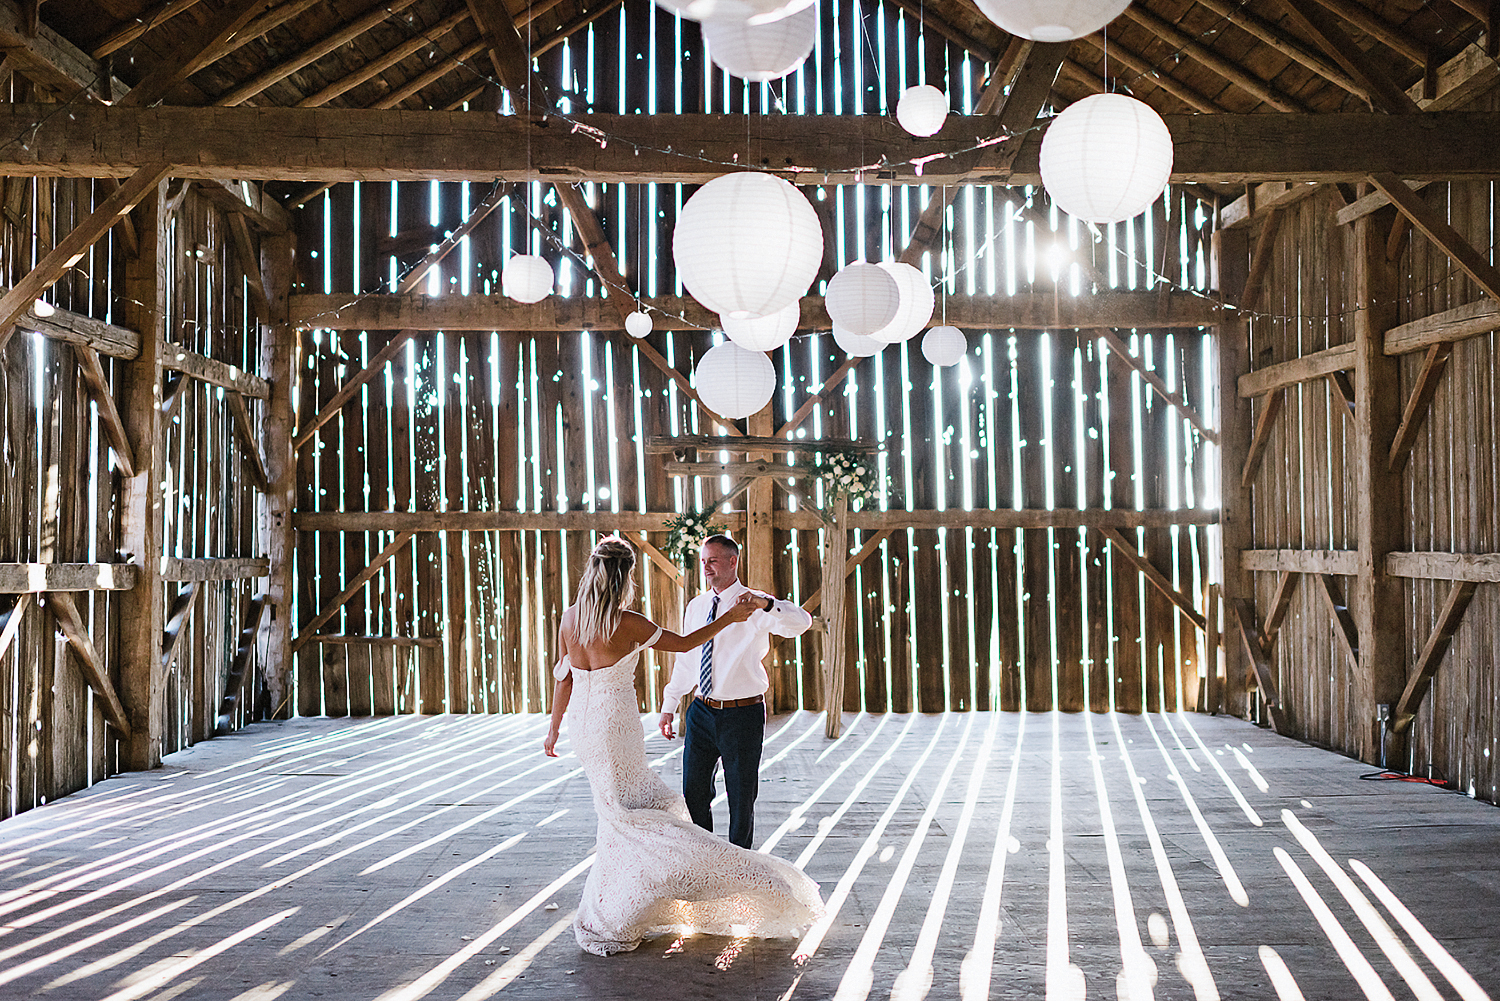 Best-Wedding-Photographers-Toronto-with-Documentary-and-photojournalistic-style-3b-Photography-Intimate-Wedding-at-Dowswell-Barn-Wedding-Photography-Bride-and-groom-intimate-wedding-portraits-first-dance.jpg